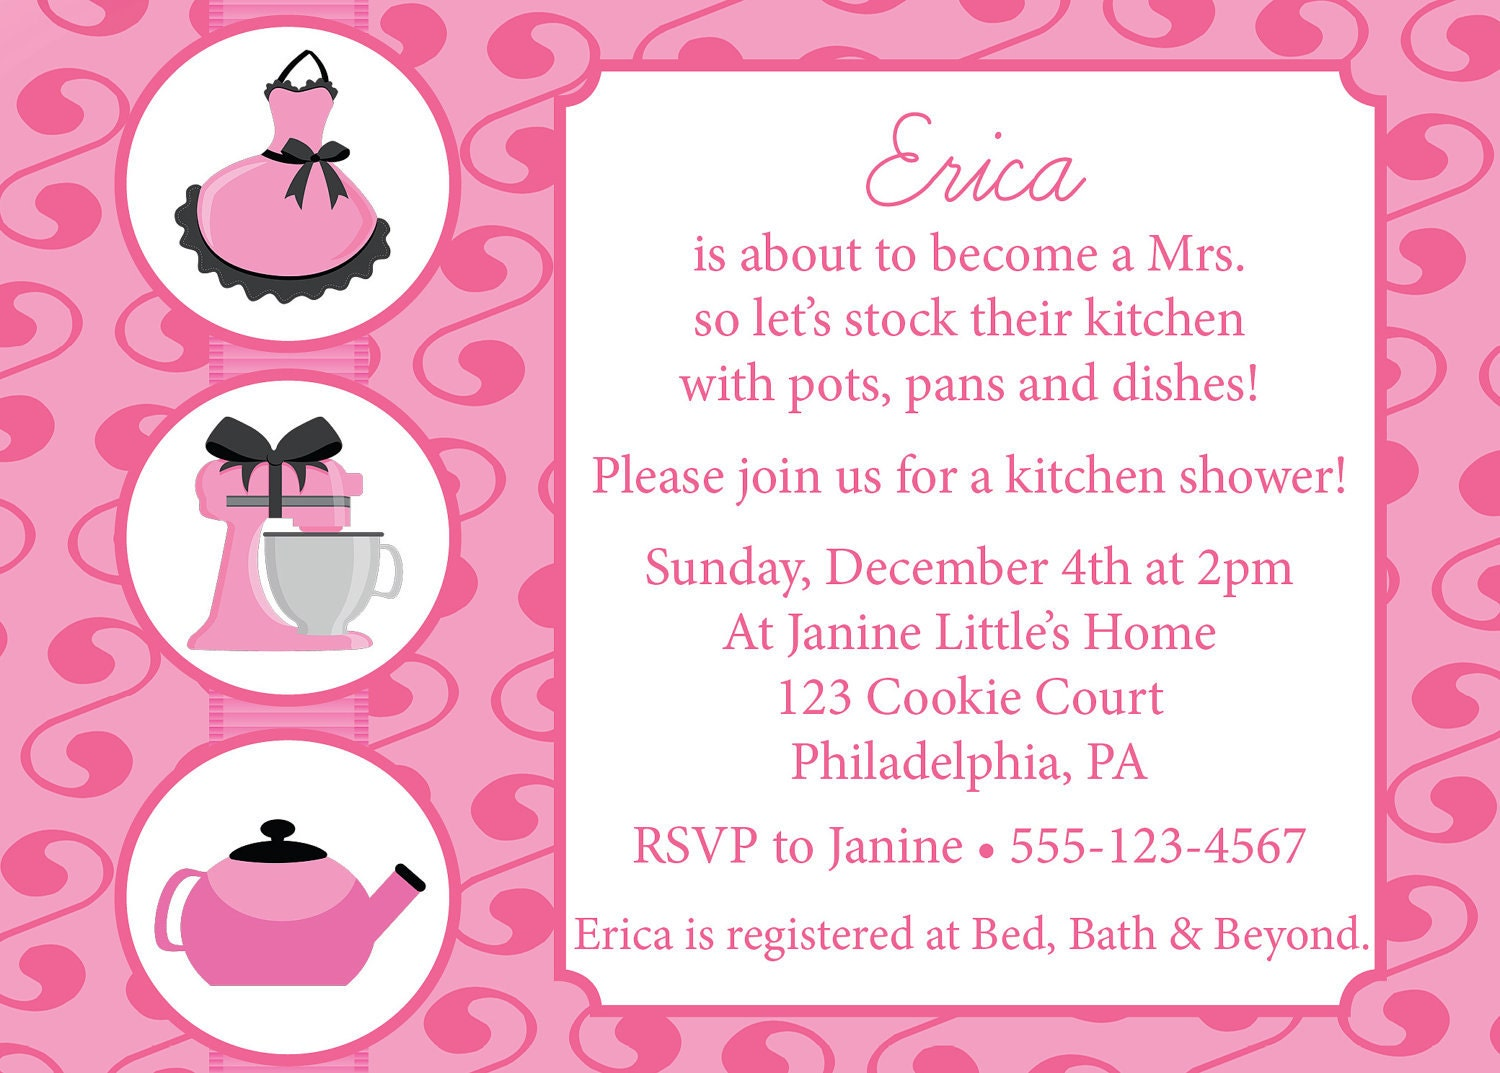 Wedding Shower Invite is perfect invitation layout